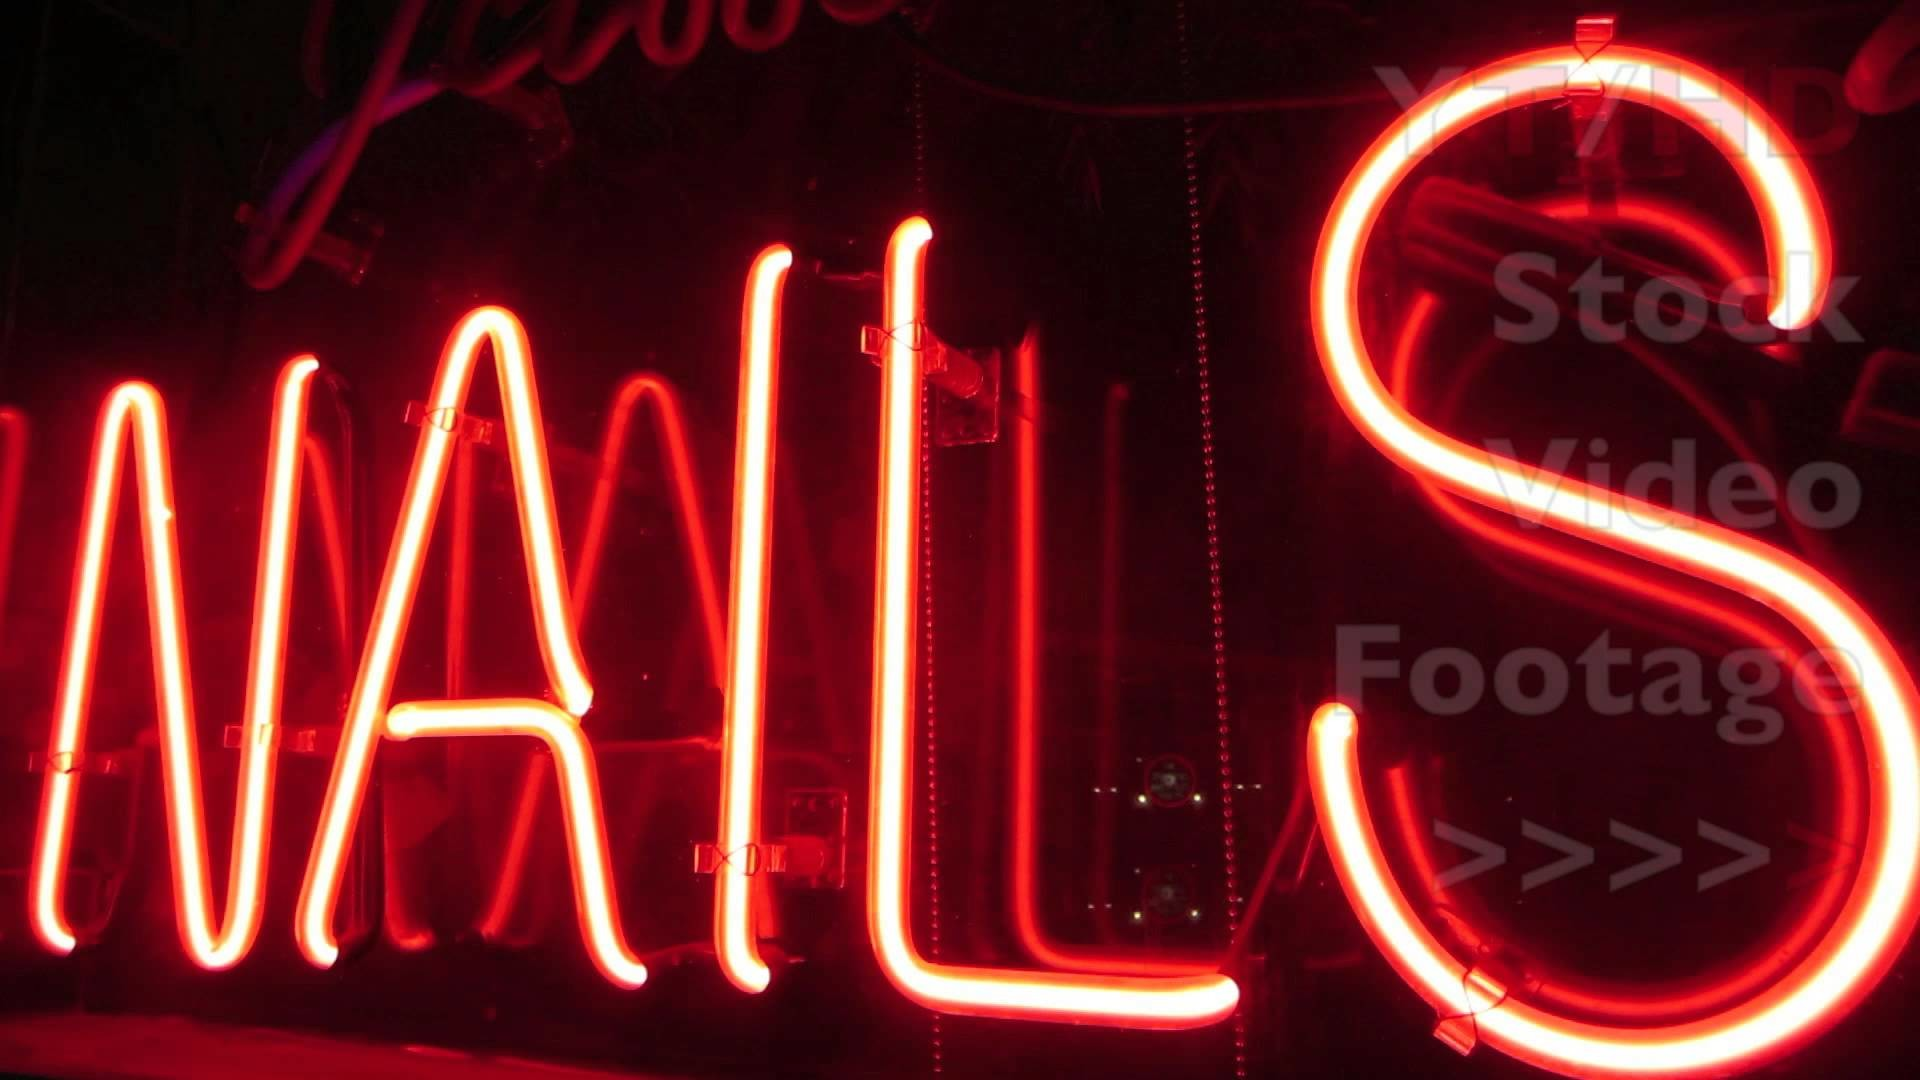 Nail Salon Spa & Nails Neon Light Signs to Advertise Local Business | HD  Stock Video Footage – YouTube